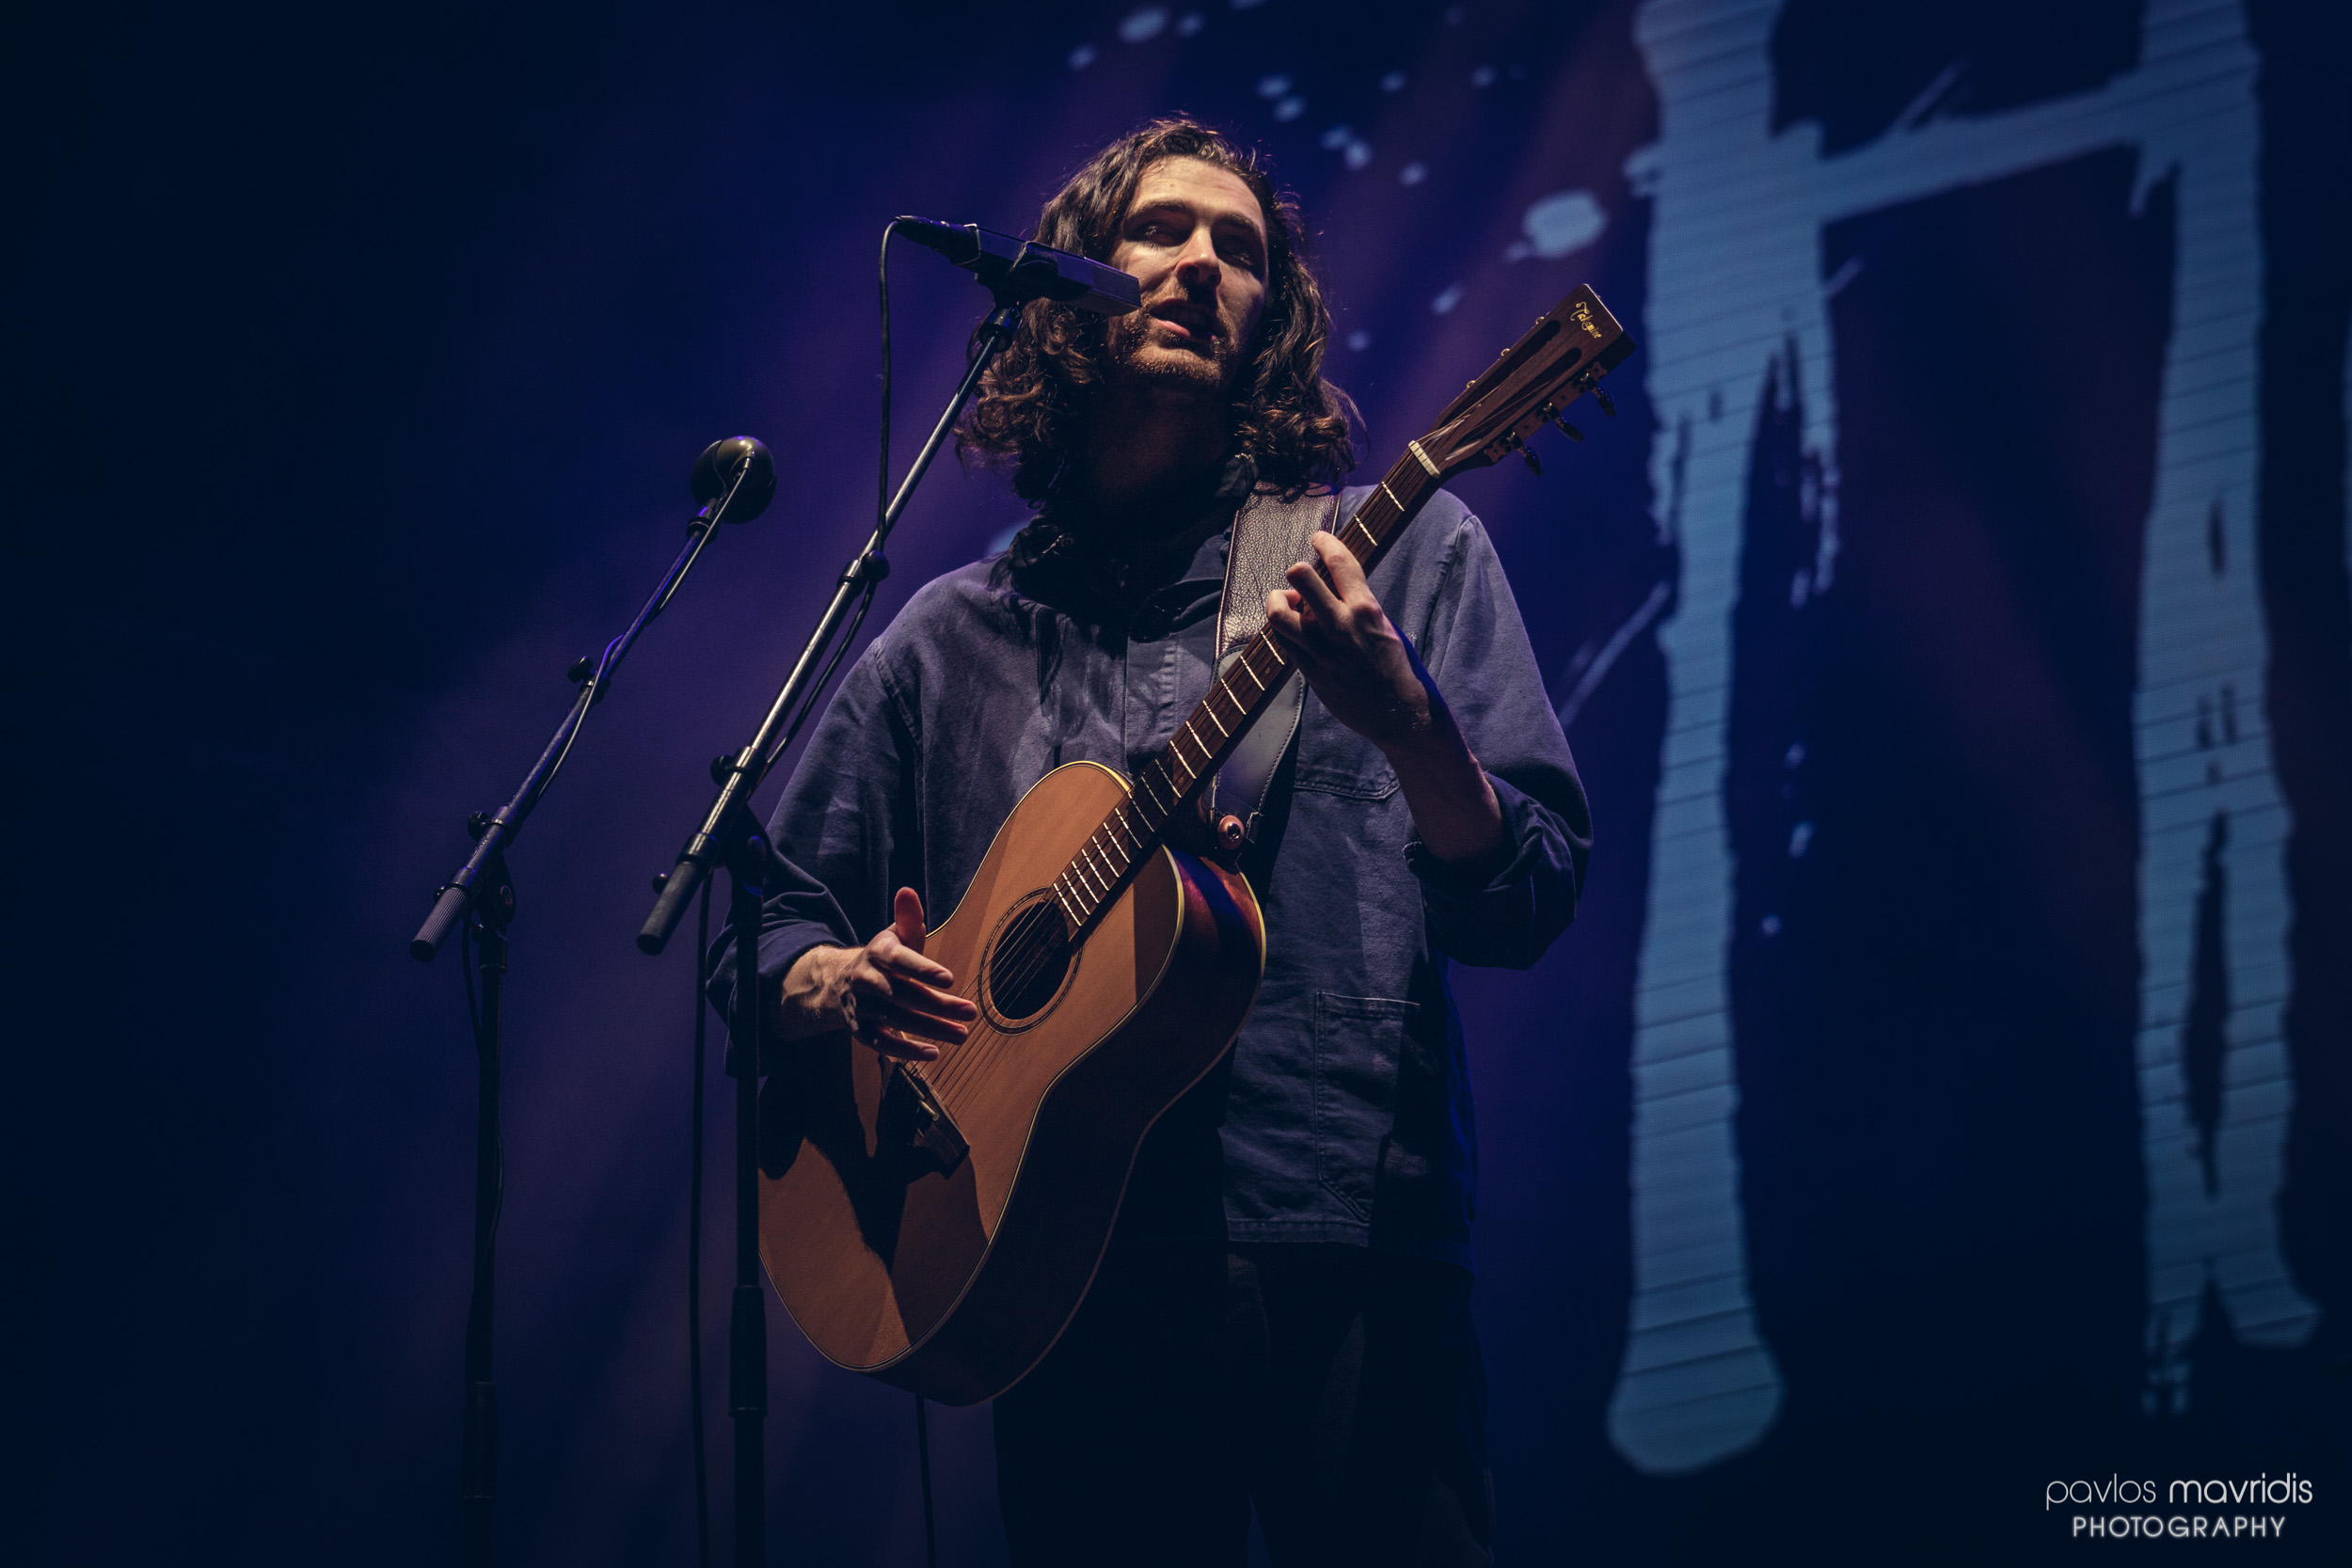 Hozier_Release Athens 2019_04_hires_web.jpg